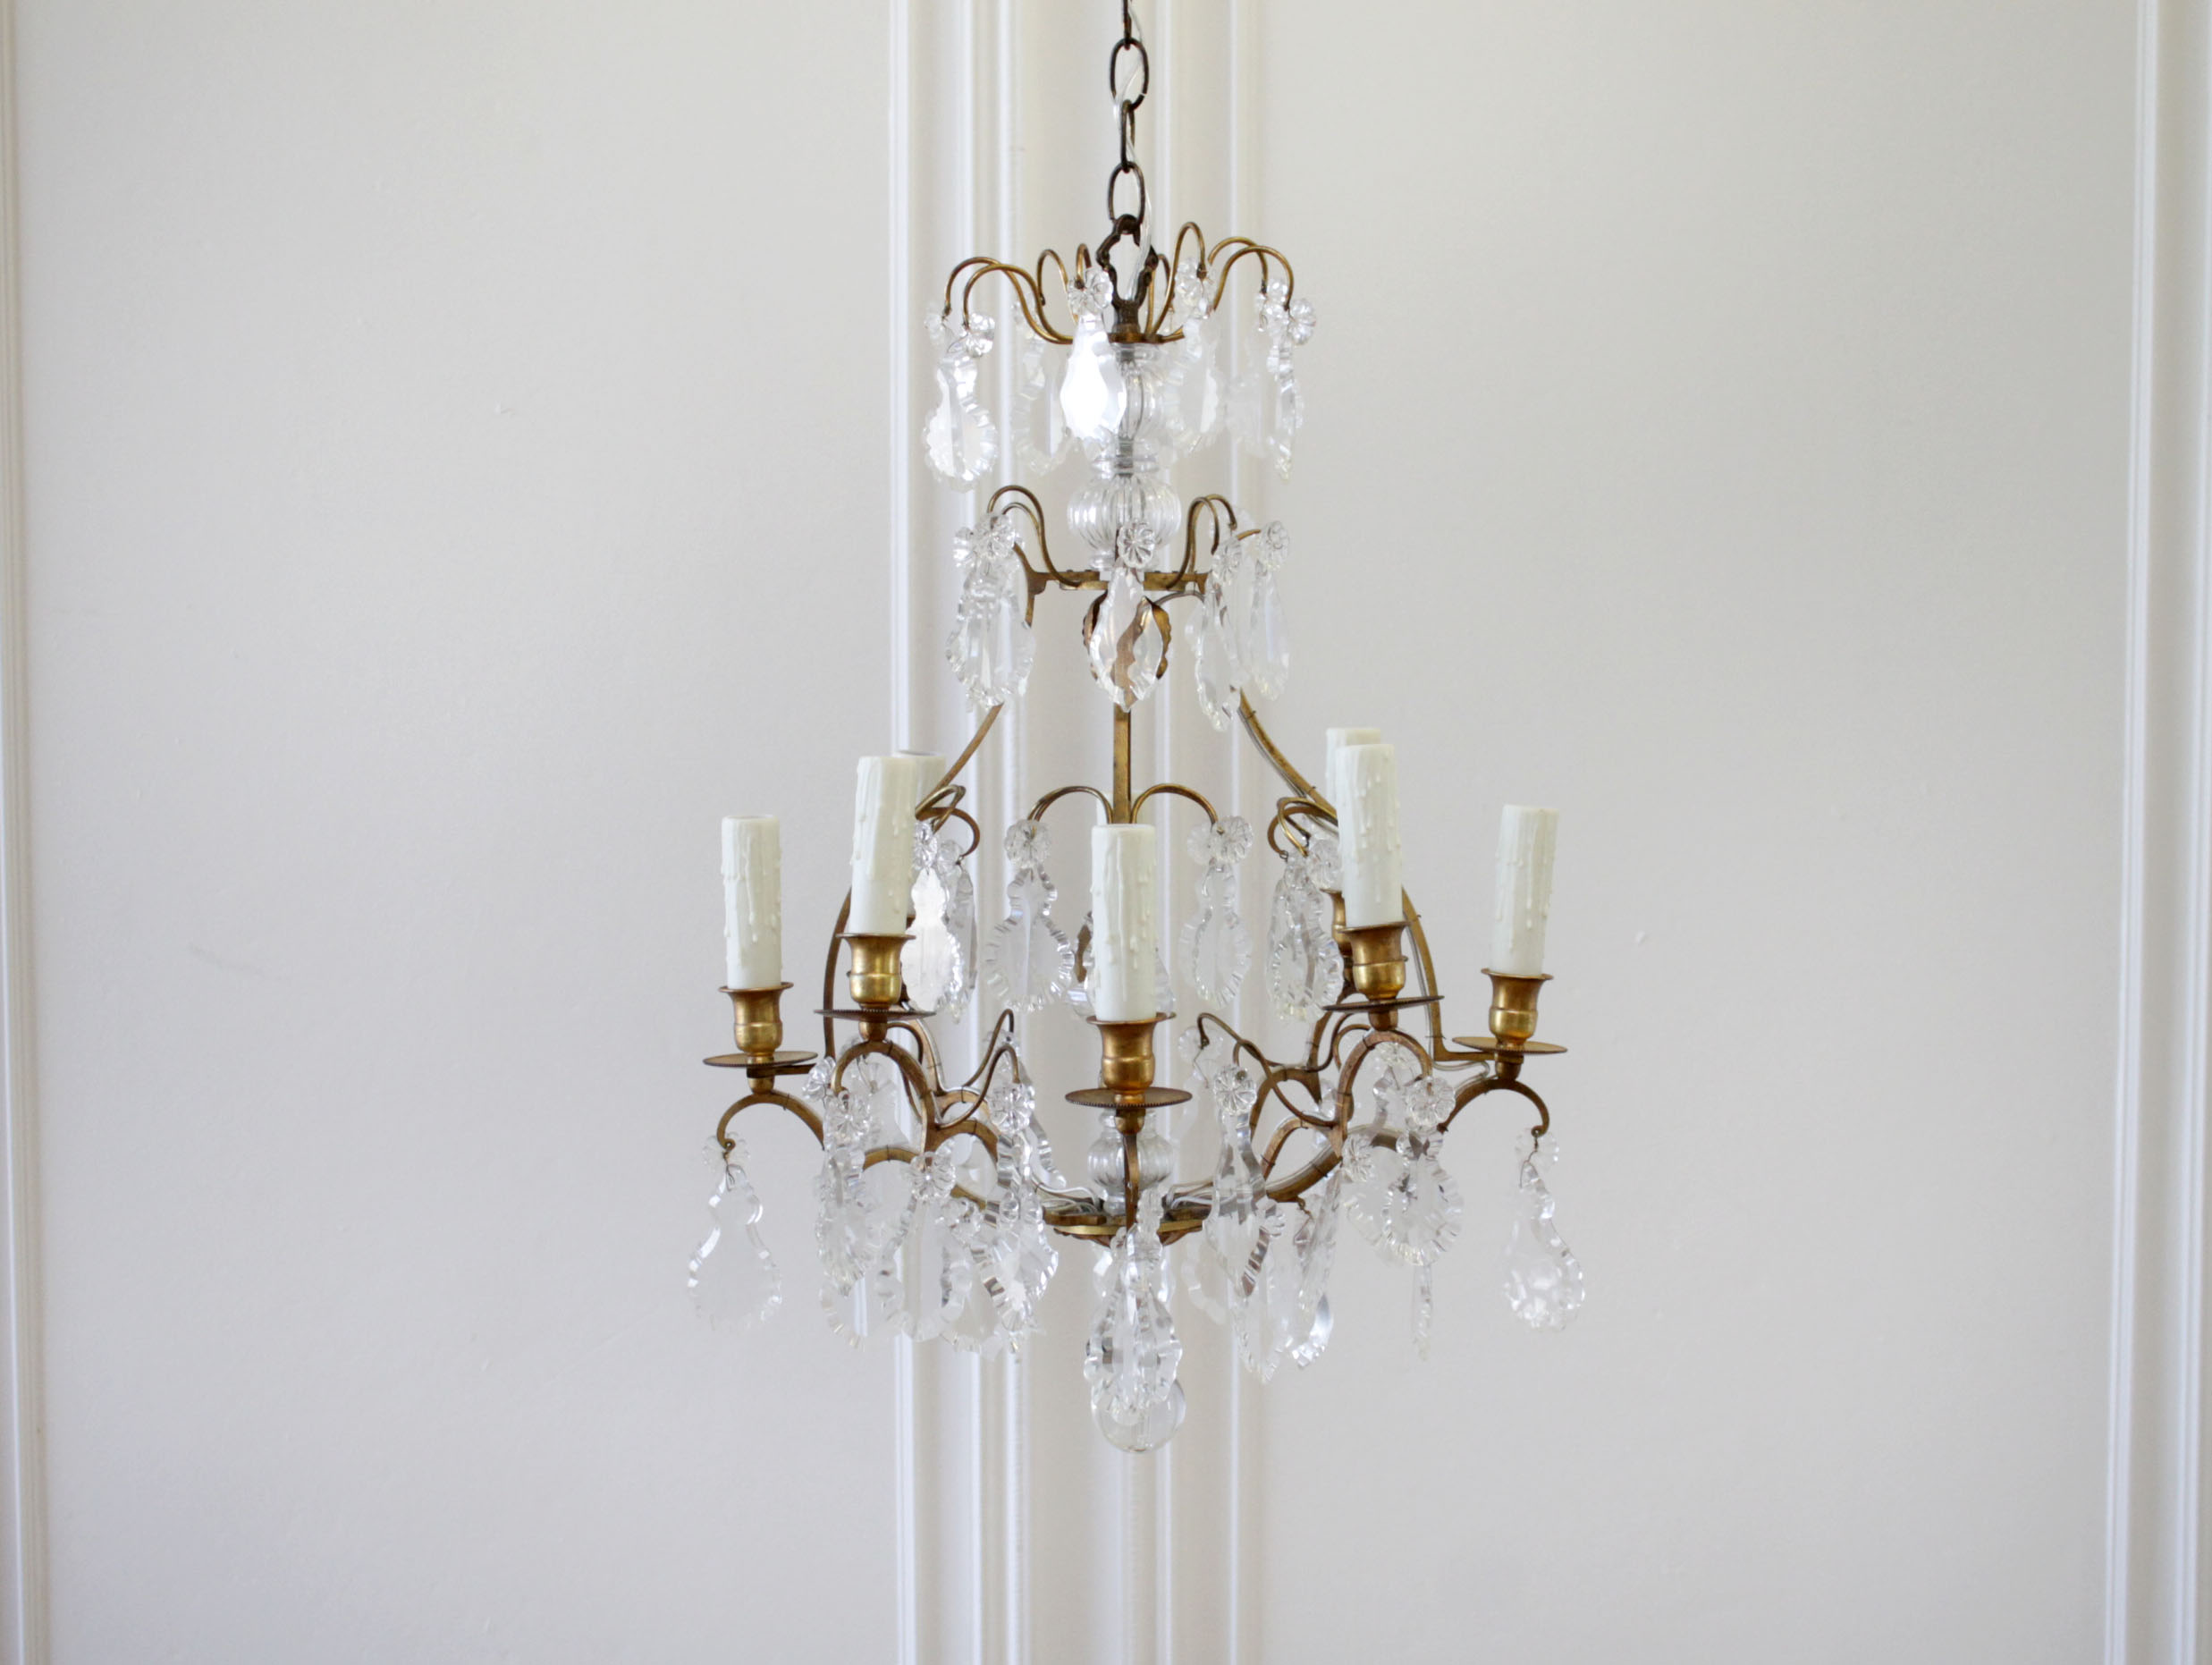 Vintage Brass Chandelier with Crystals